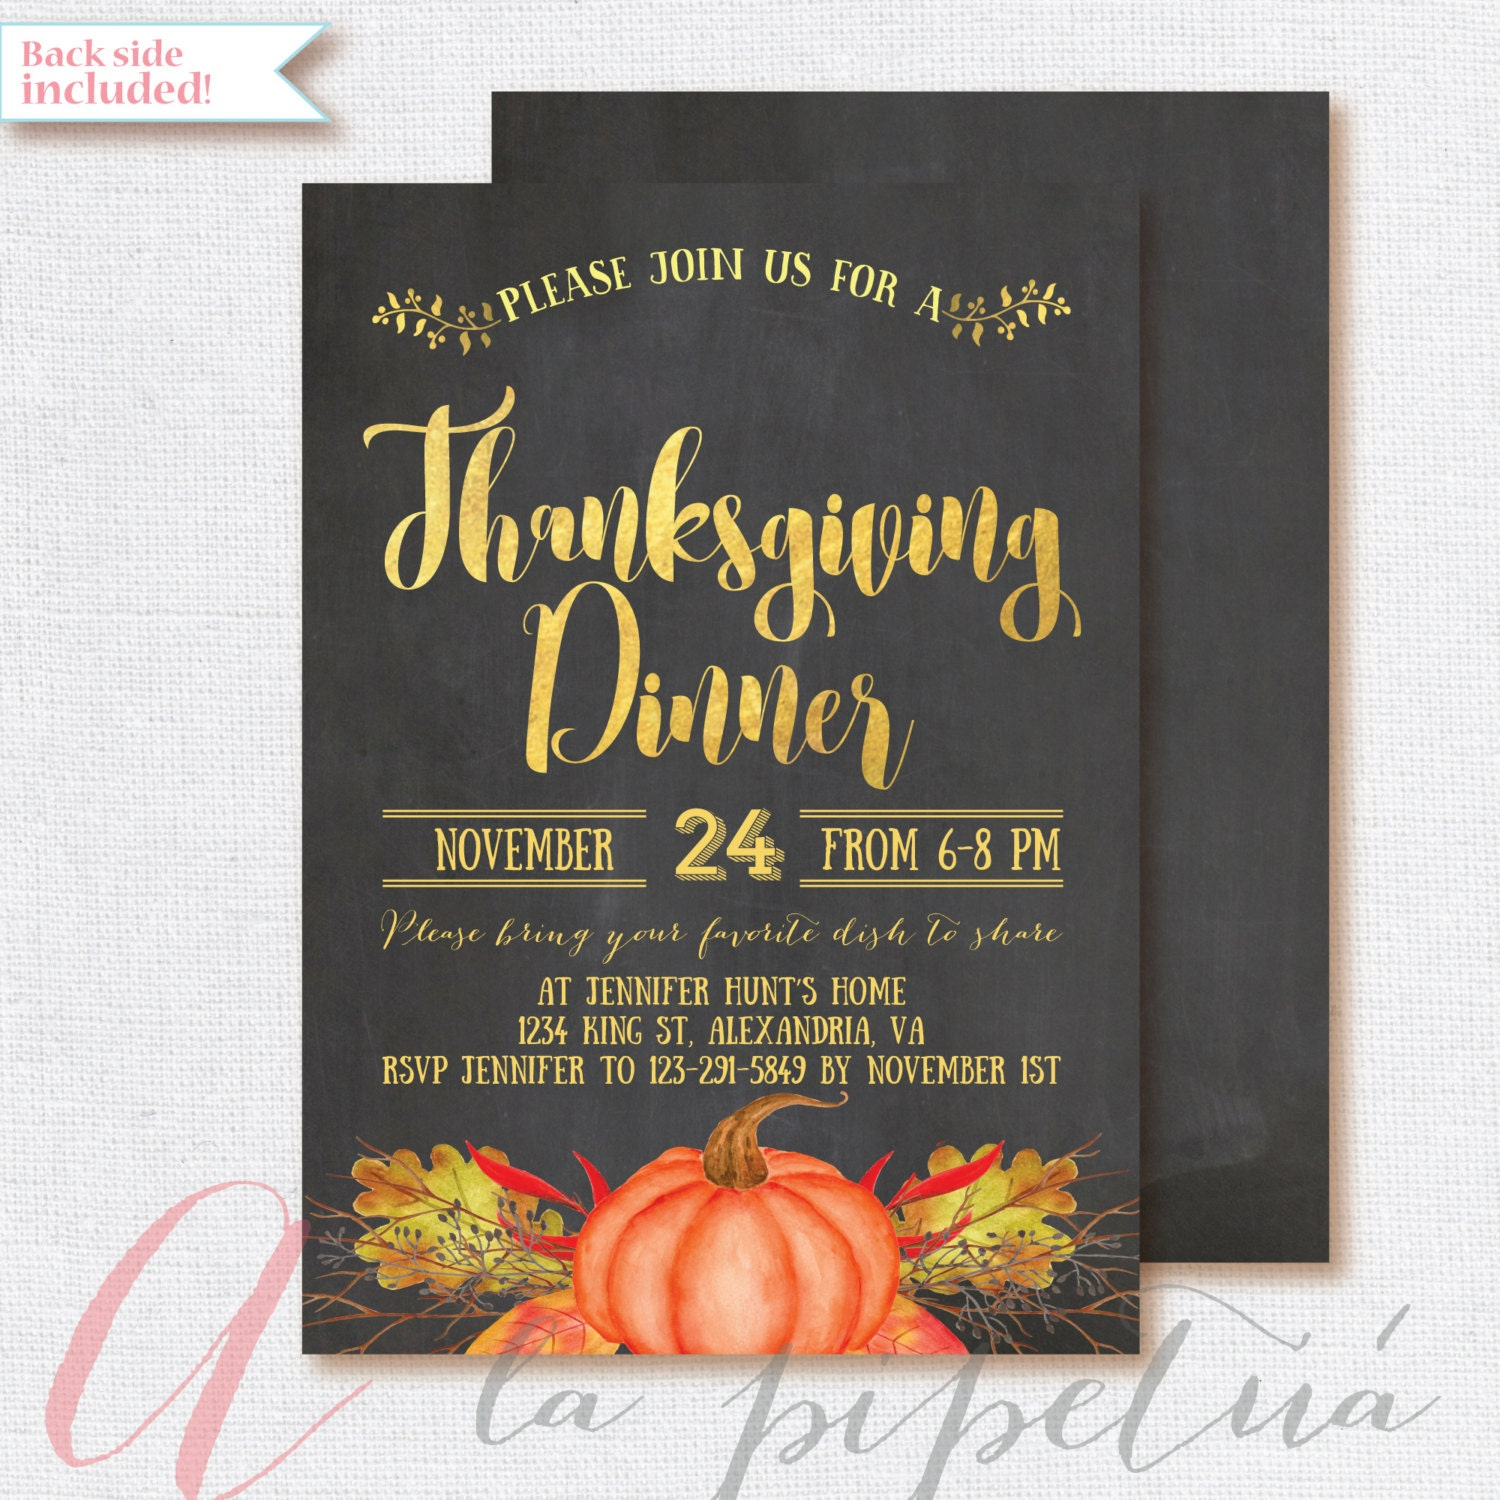 Soft image with regard to printable thanksgiving invitations